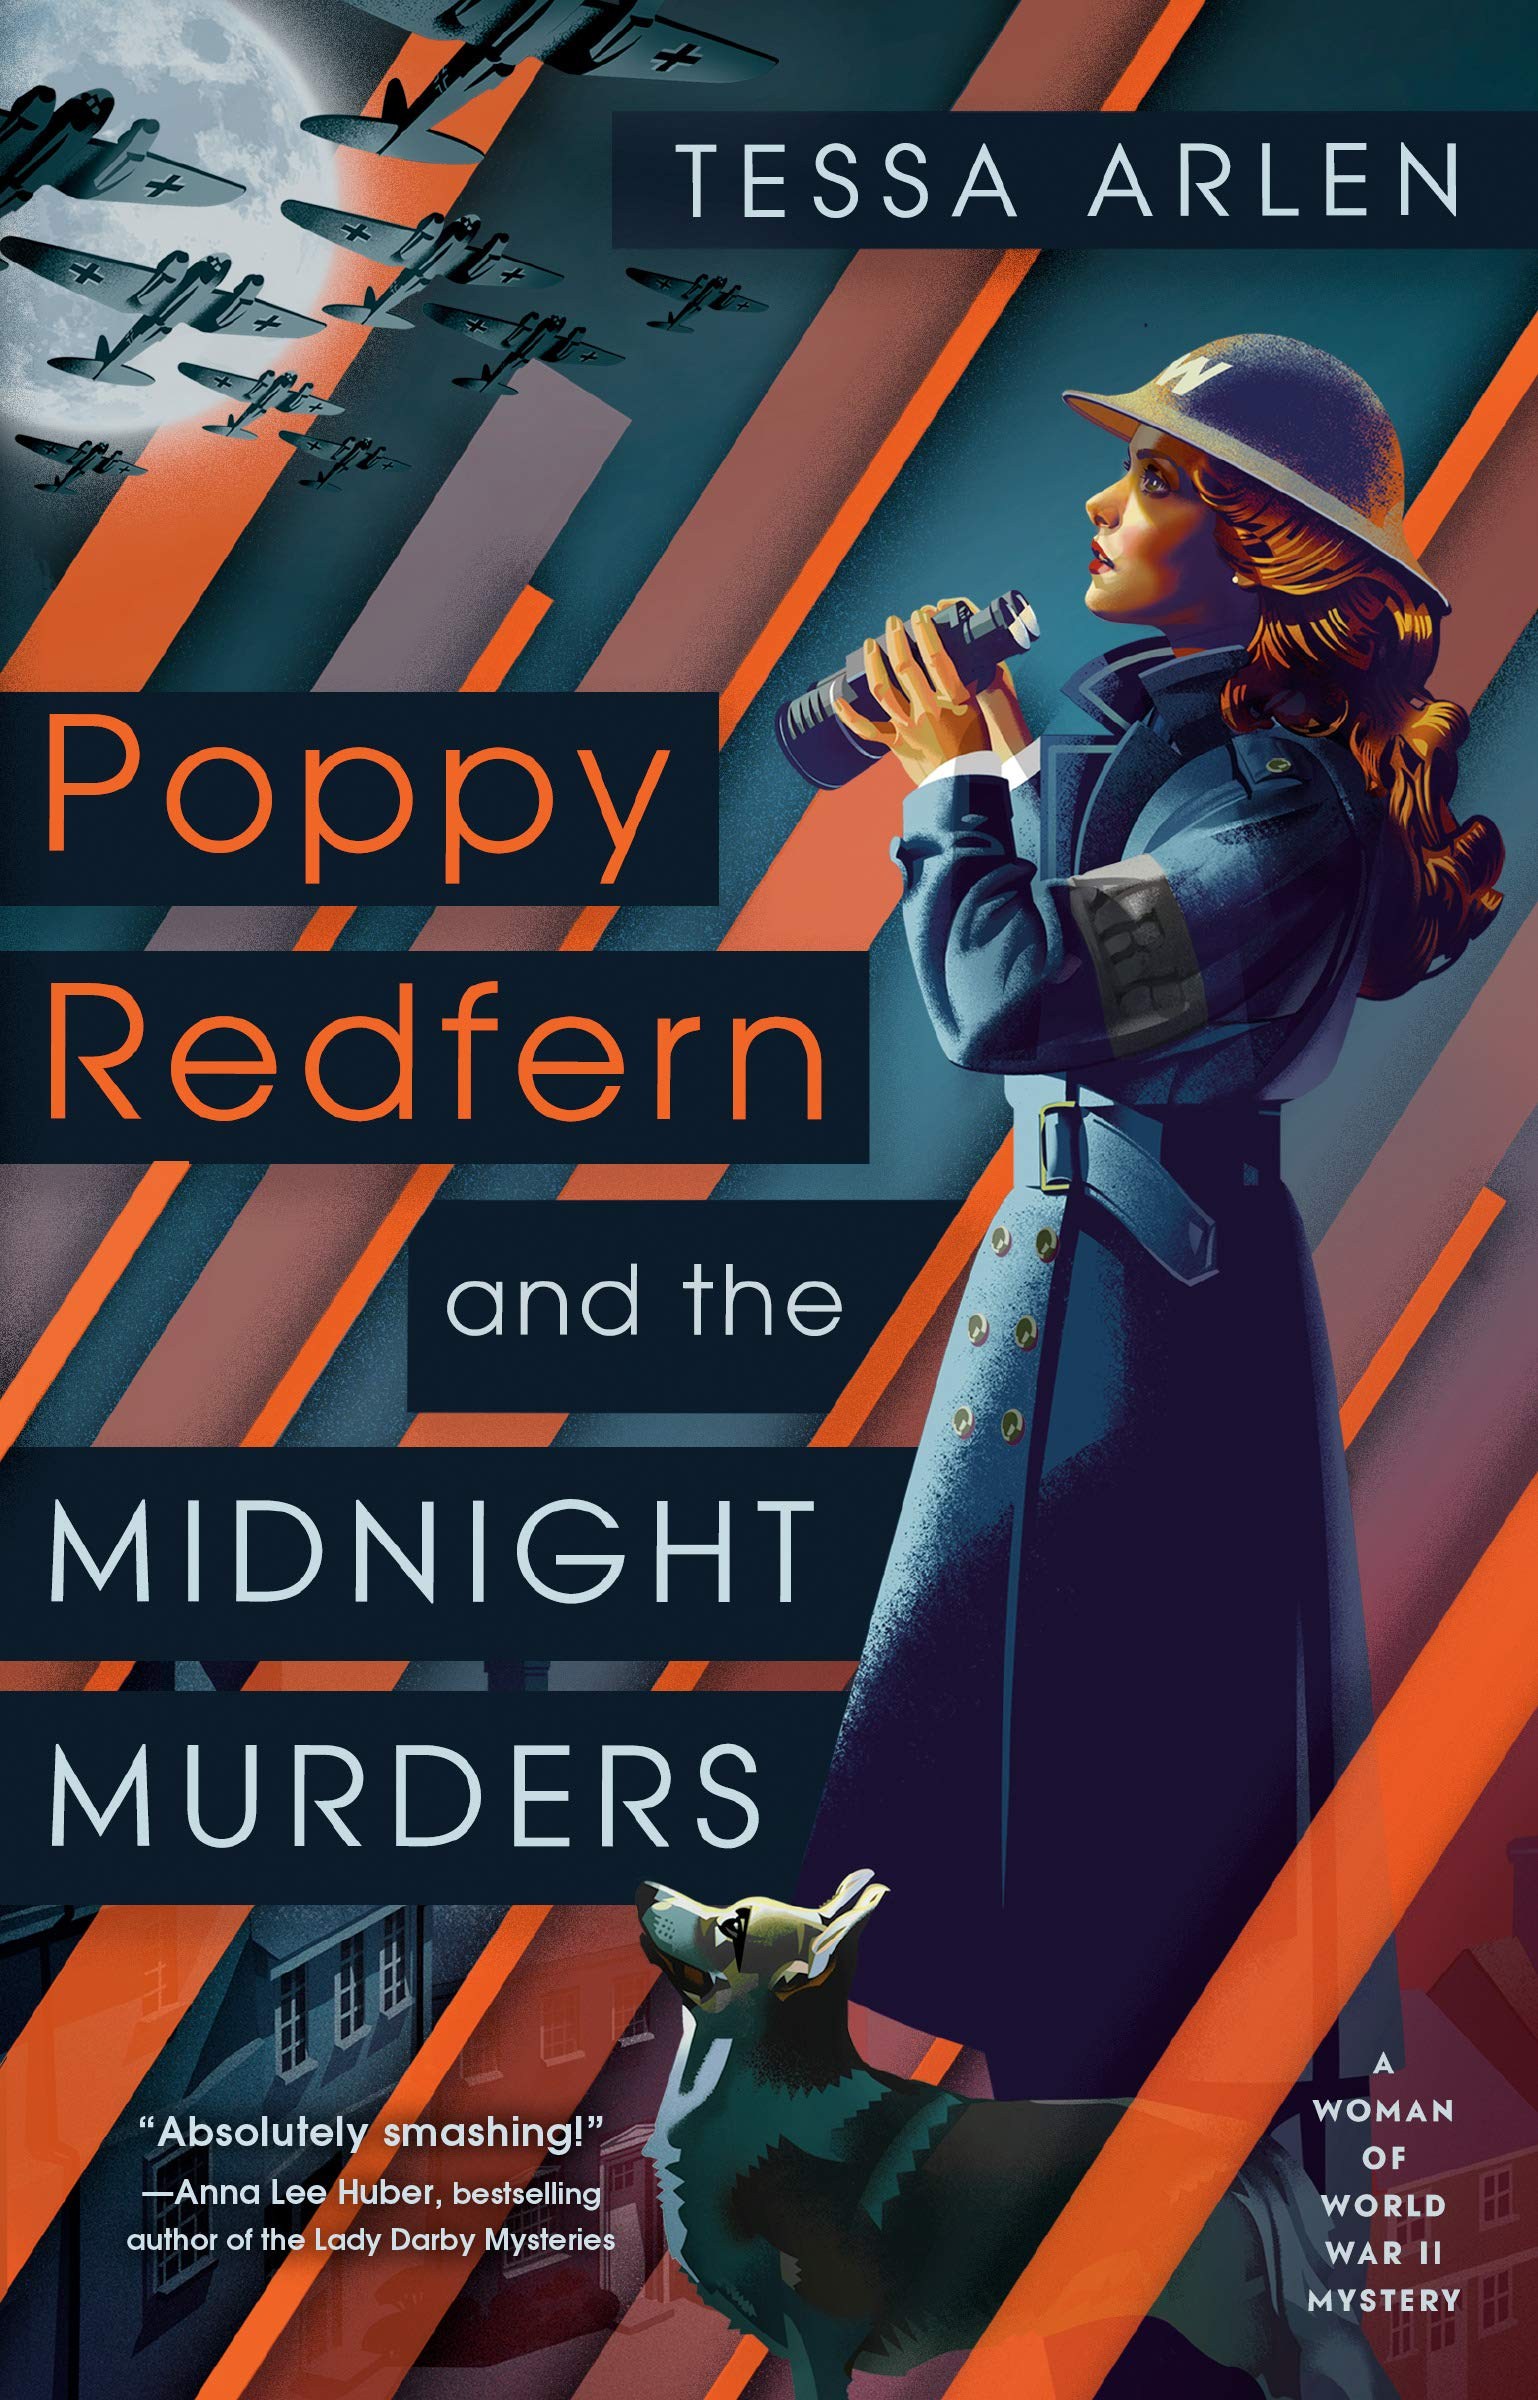 Poppy Redfern and the Midnight Murders by Tessa Allen 2019